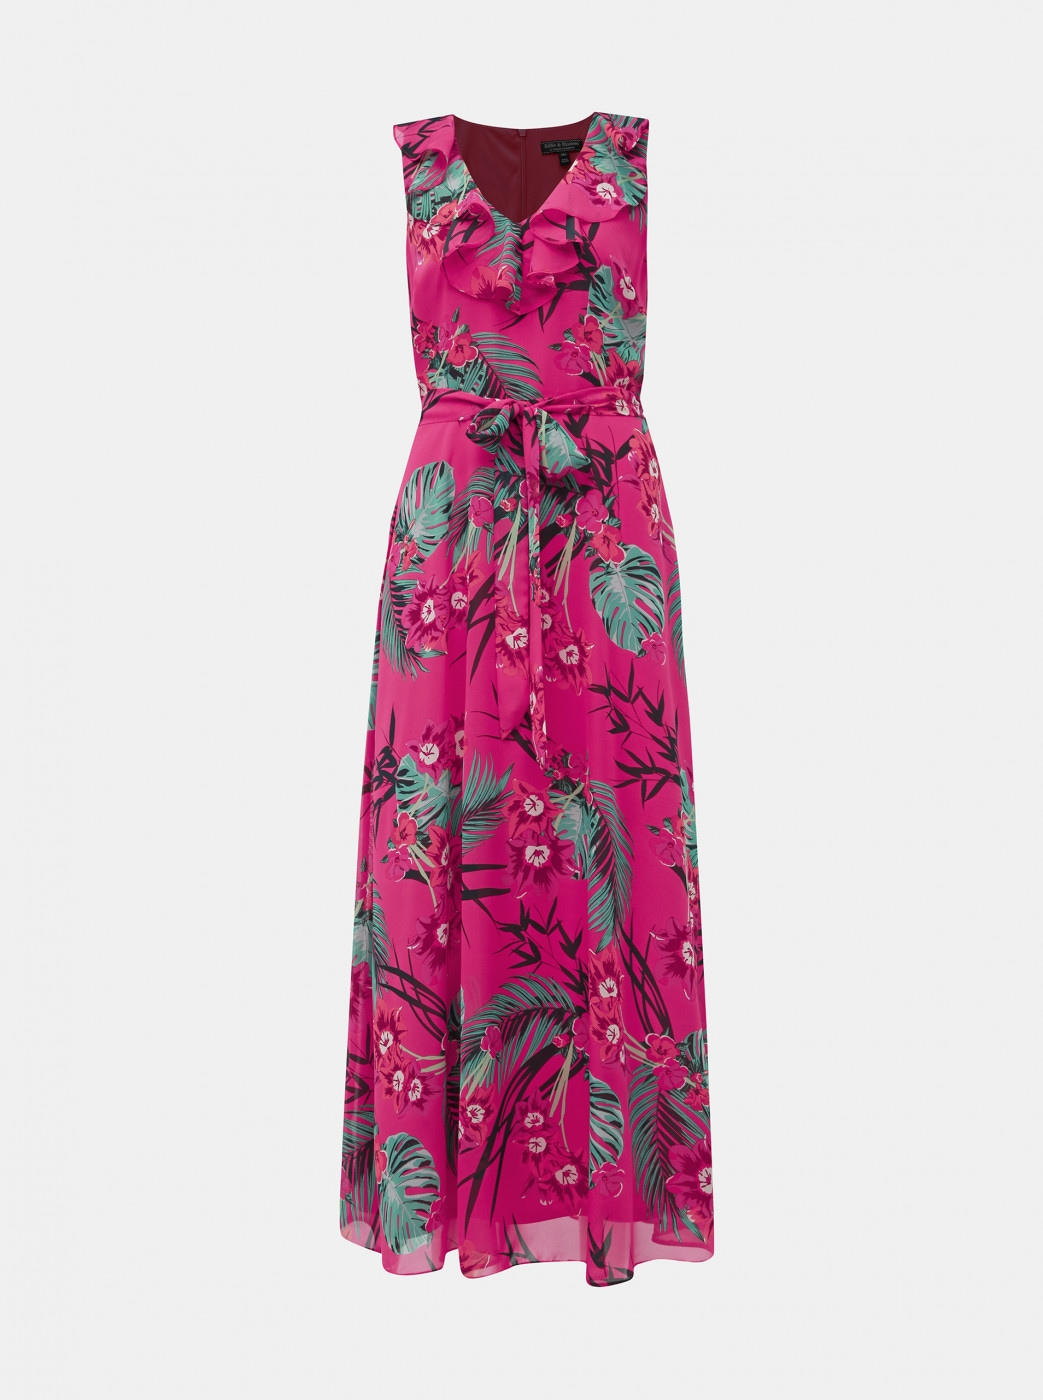 Billie & Blossom Pink Floral Maxi Dress